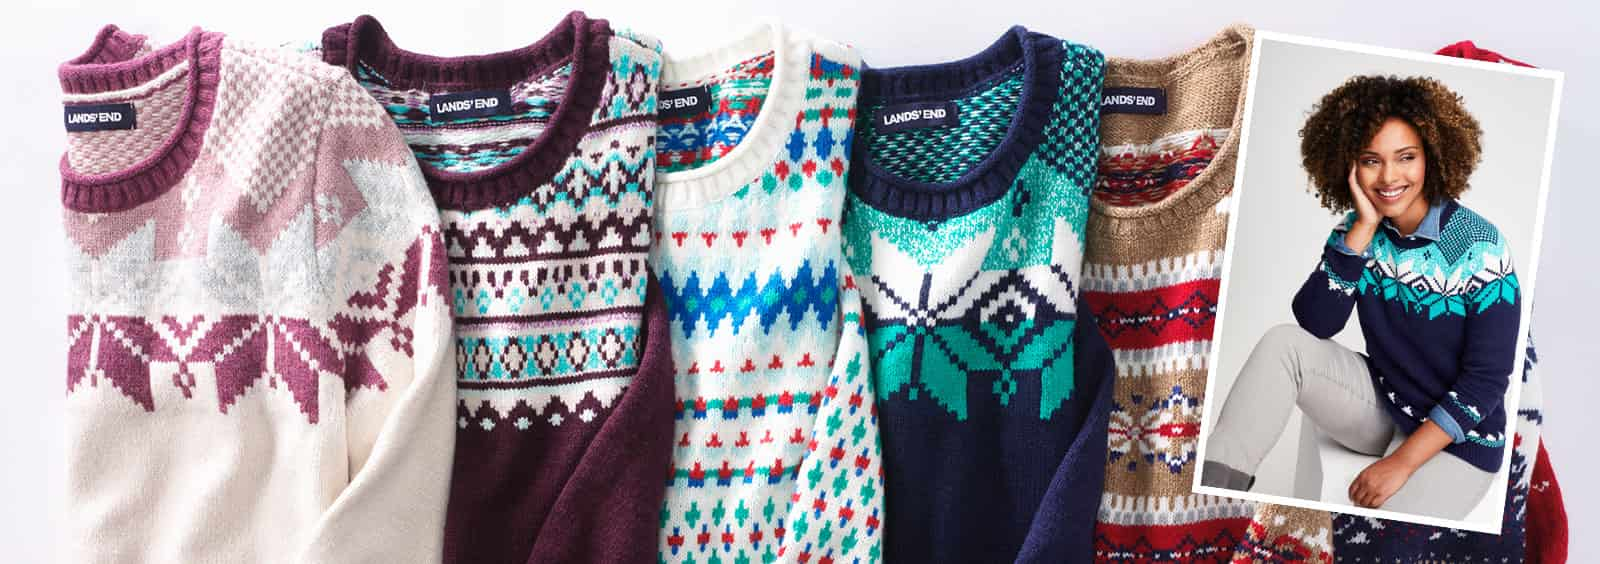 Lazy Sunday Clothing to Rock Your Day